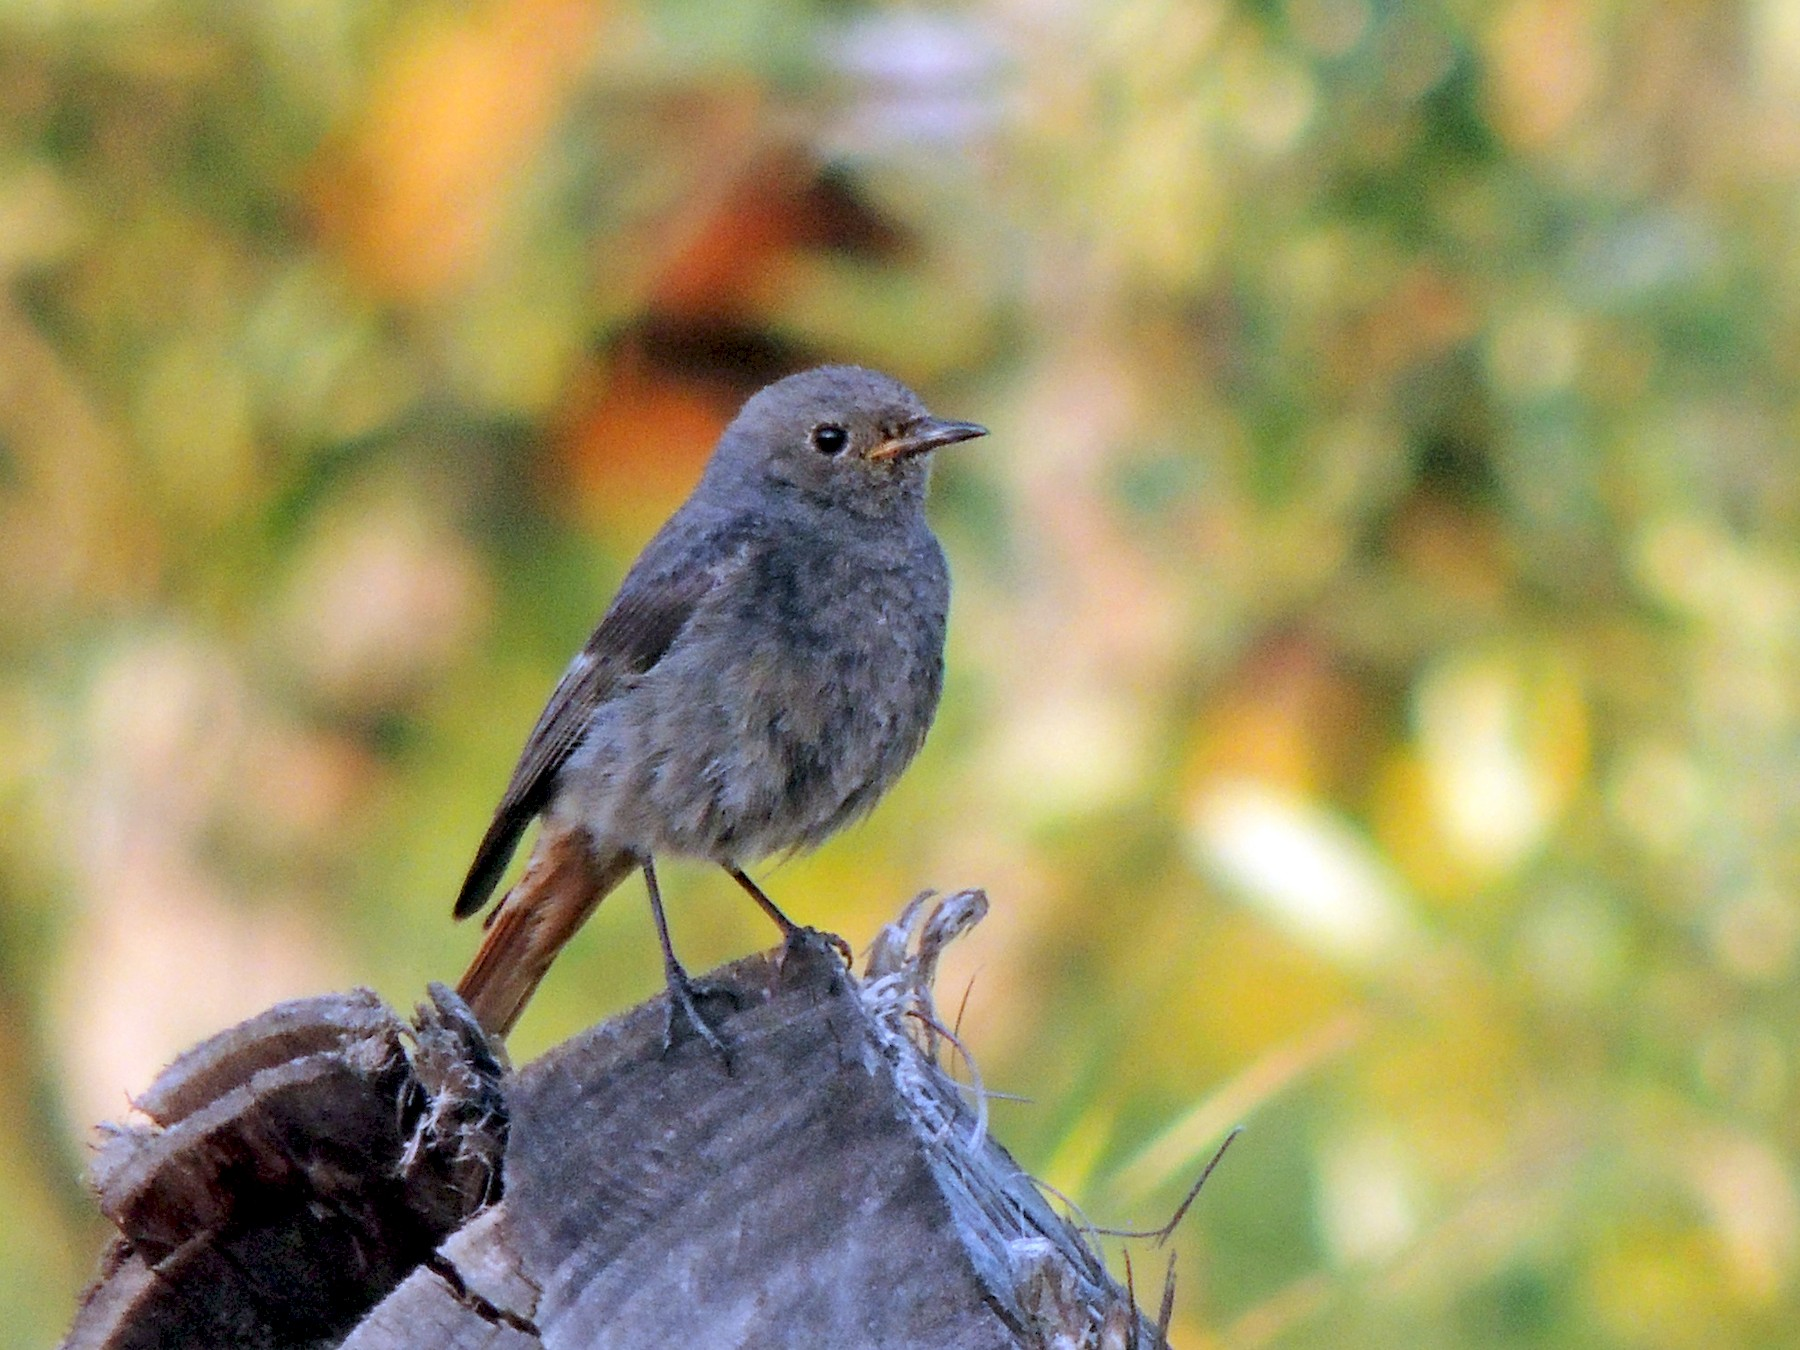 Black Redstart - Fábio Matos